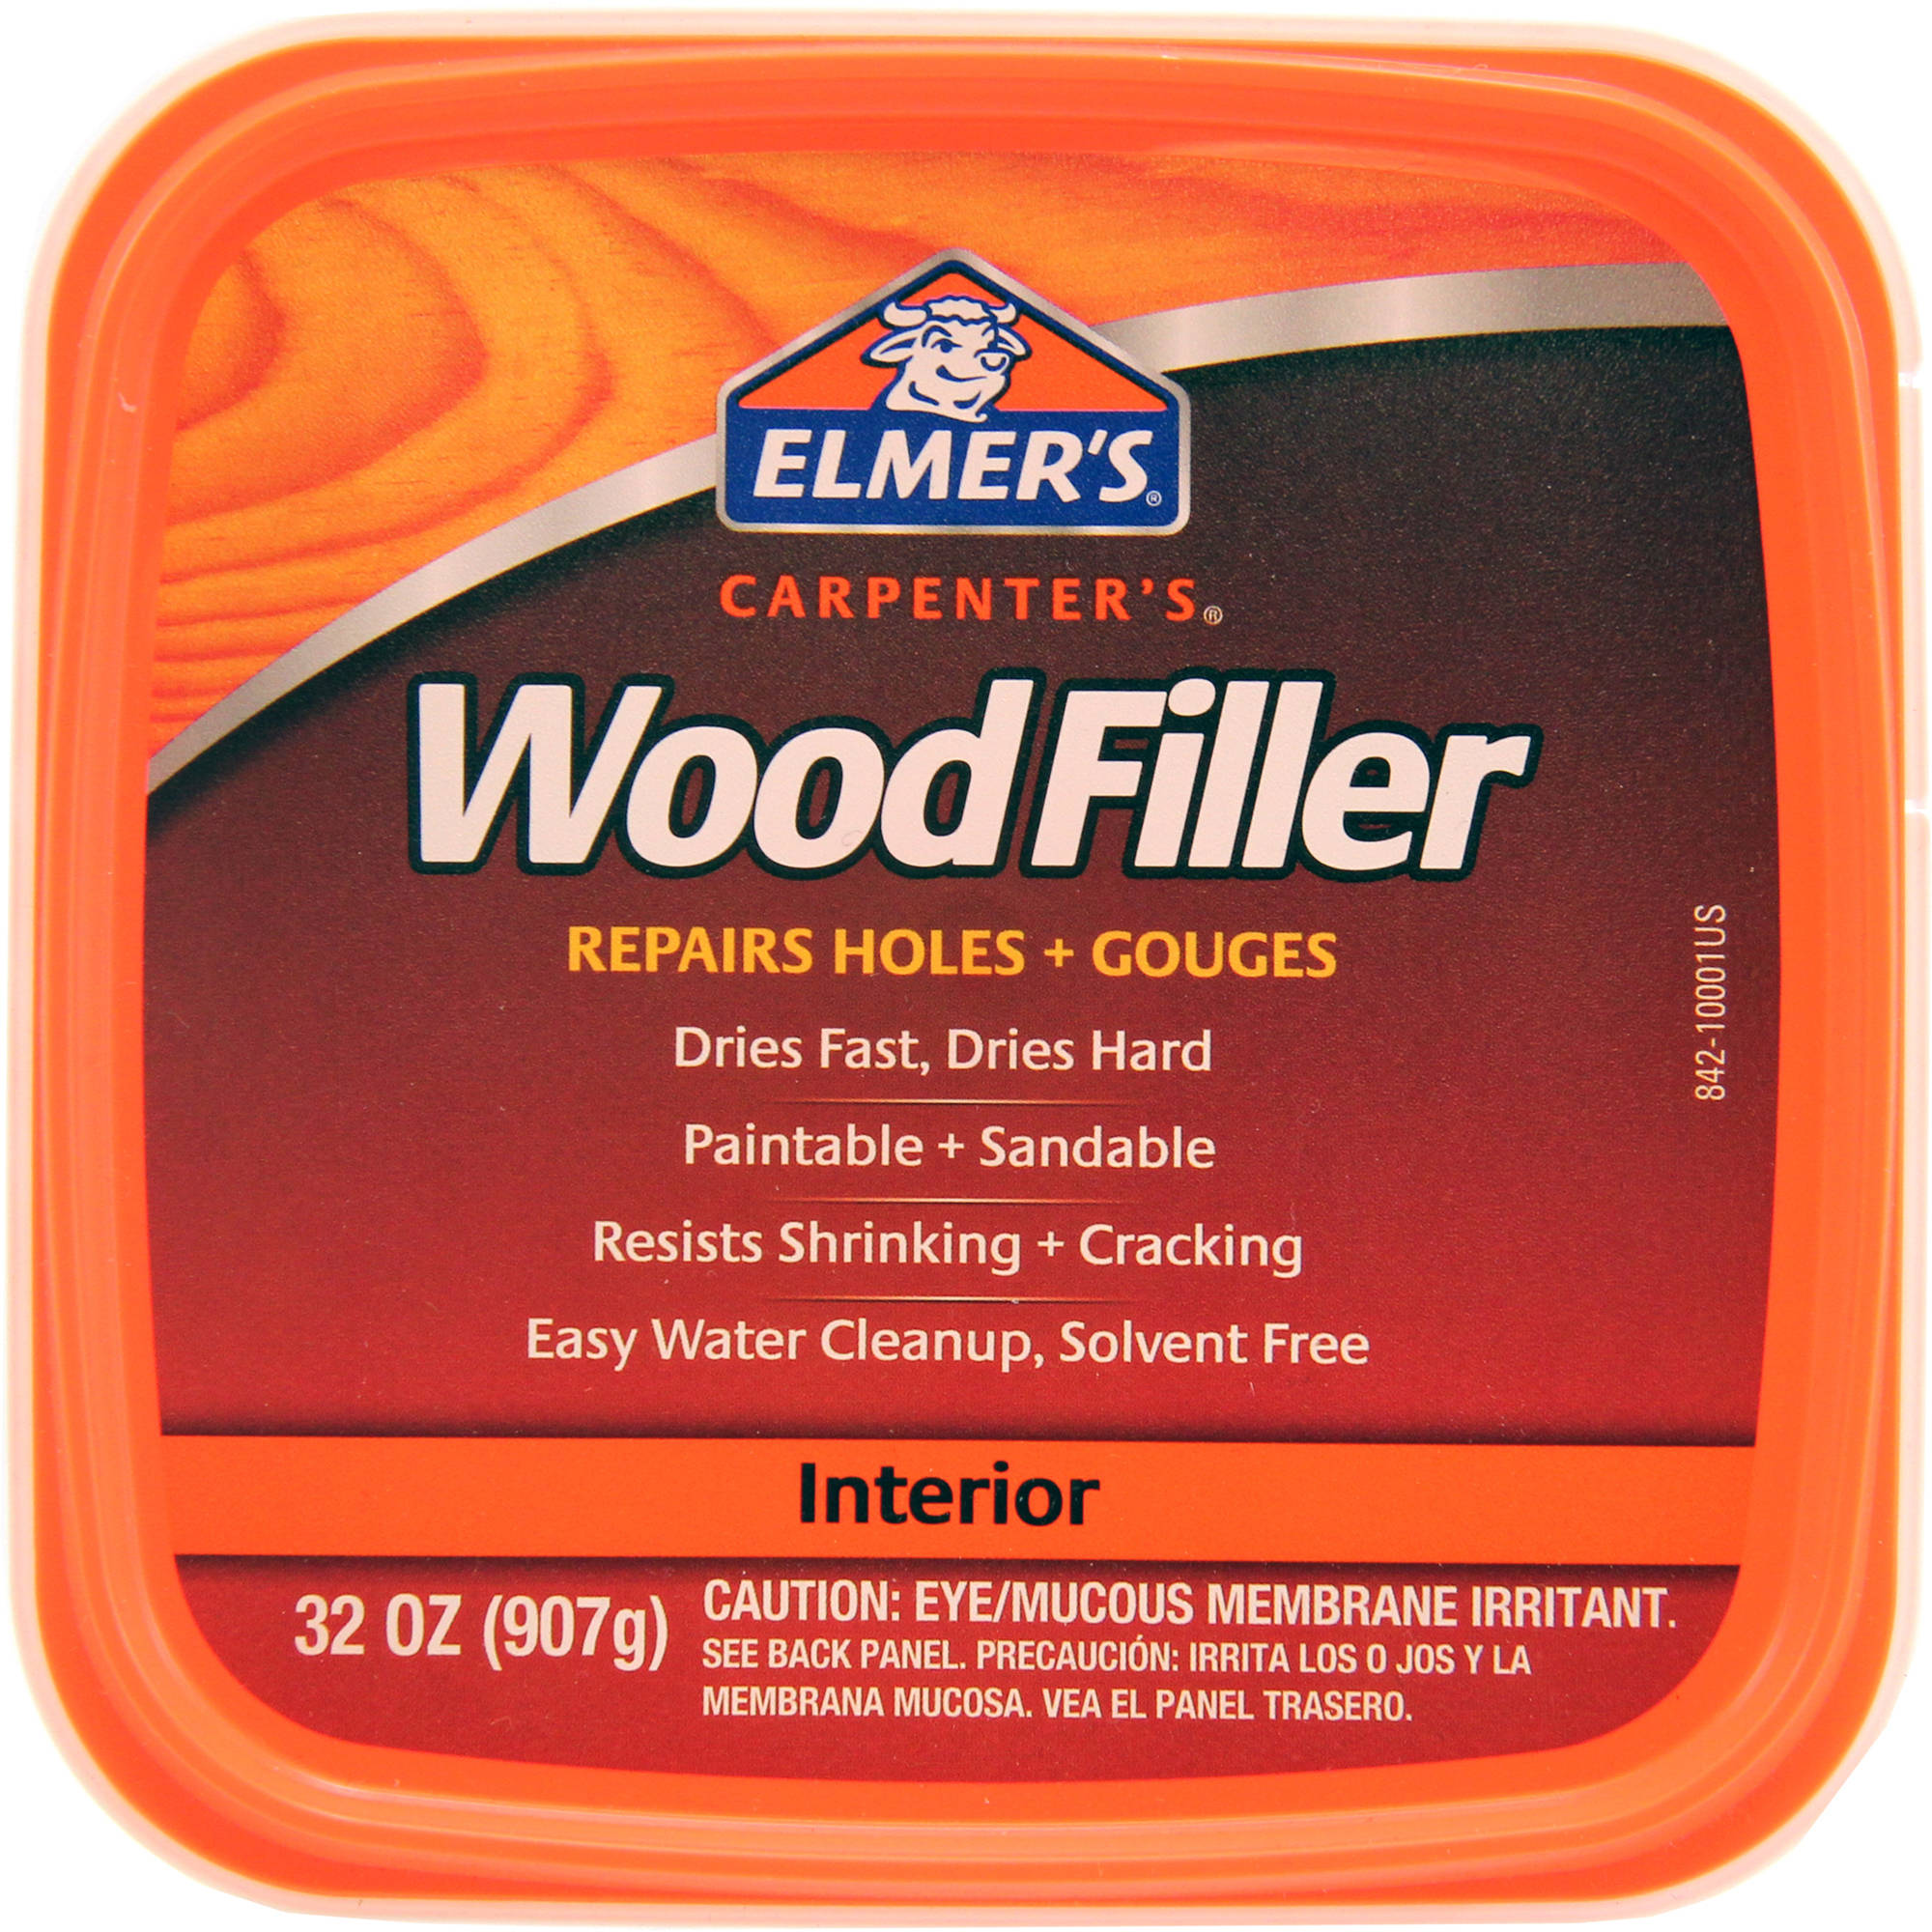 Elmer's Carpenter's Wood Filler, Natural, 32 oz